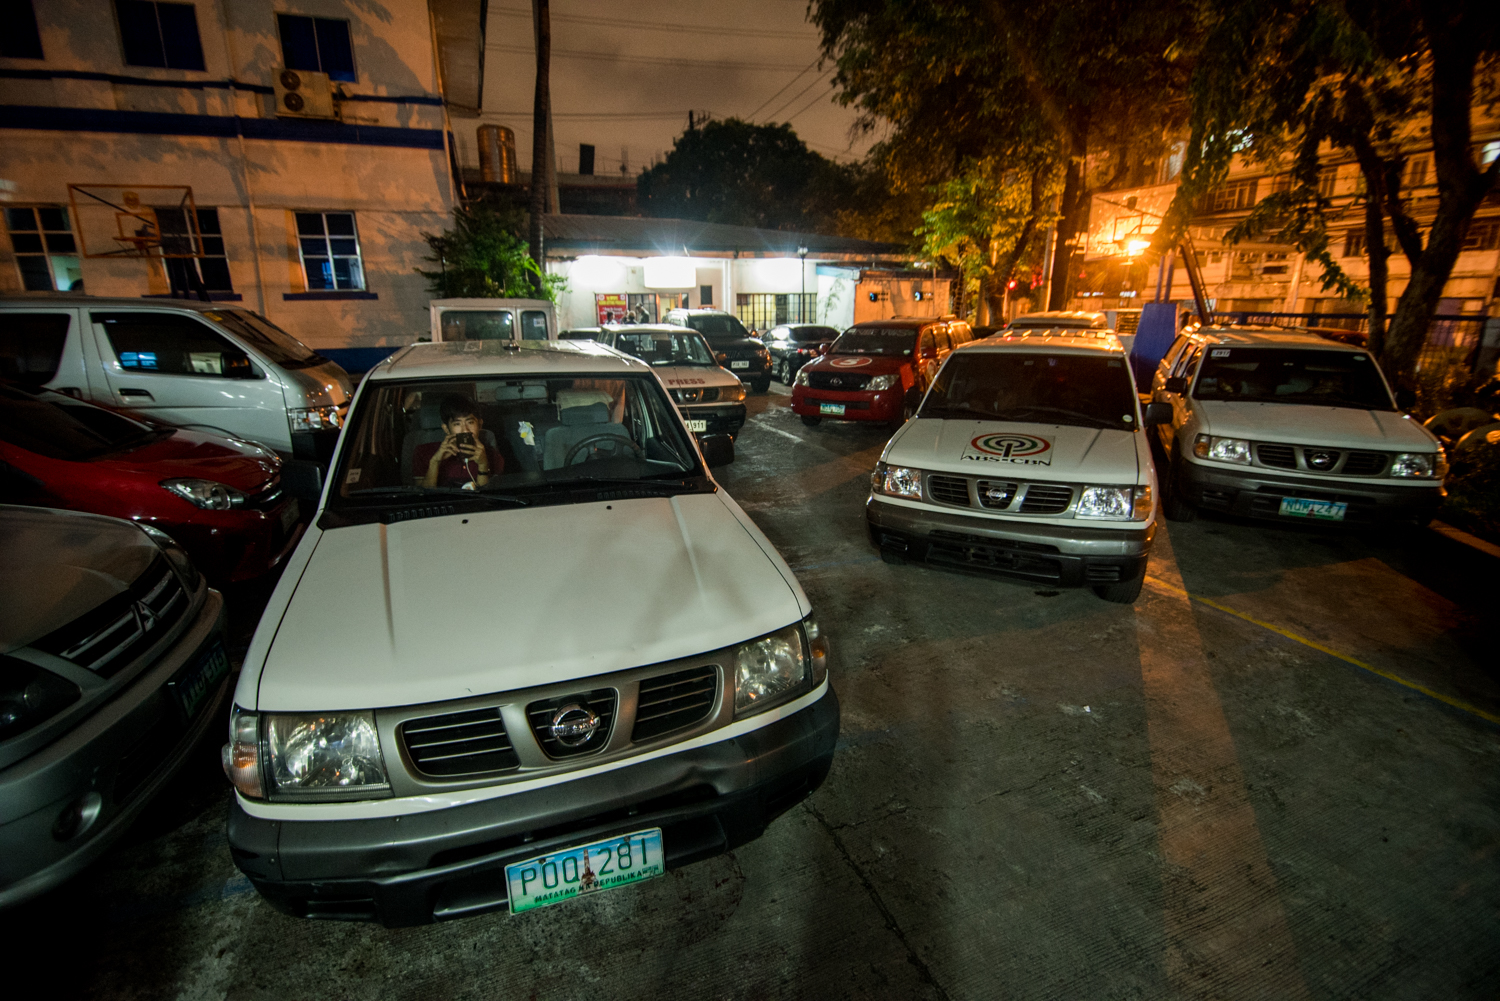 Vehicles of different media organizations on alert awaiting the next killing report of the night, August 25, at the Manila Police District Headquarters in Manila City, Philippines. The night shift duty for reporters had been full and busy since President Rodrigo Duterte sat to power on July 1.